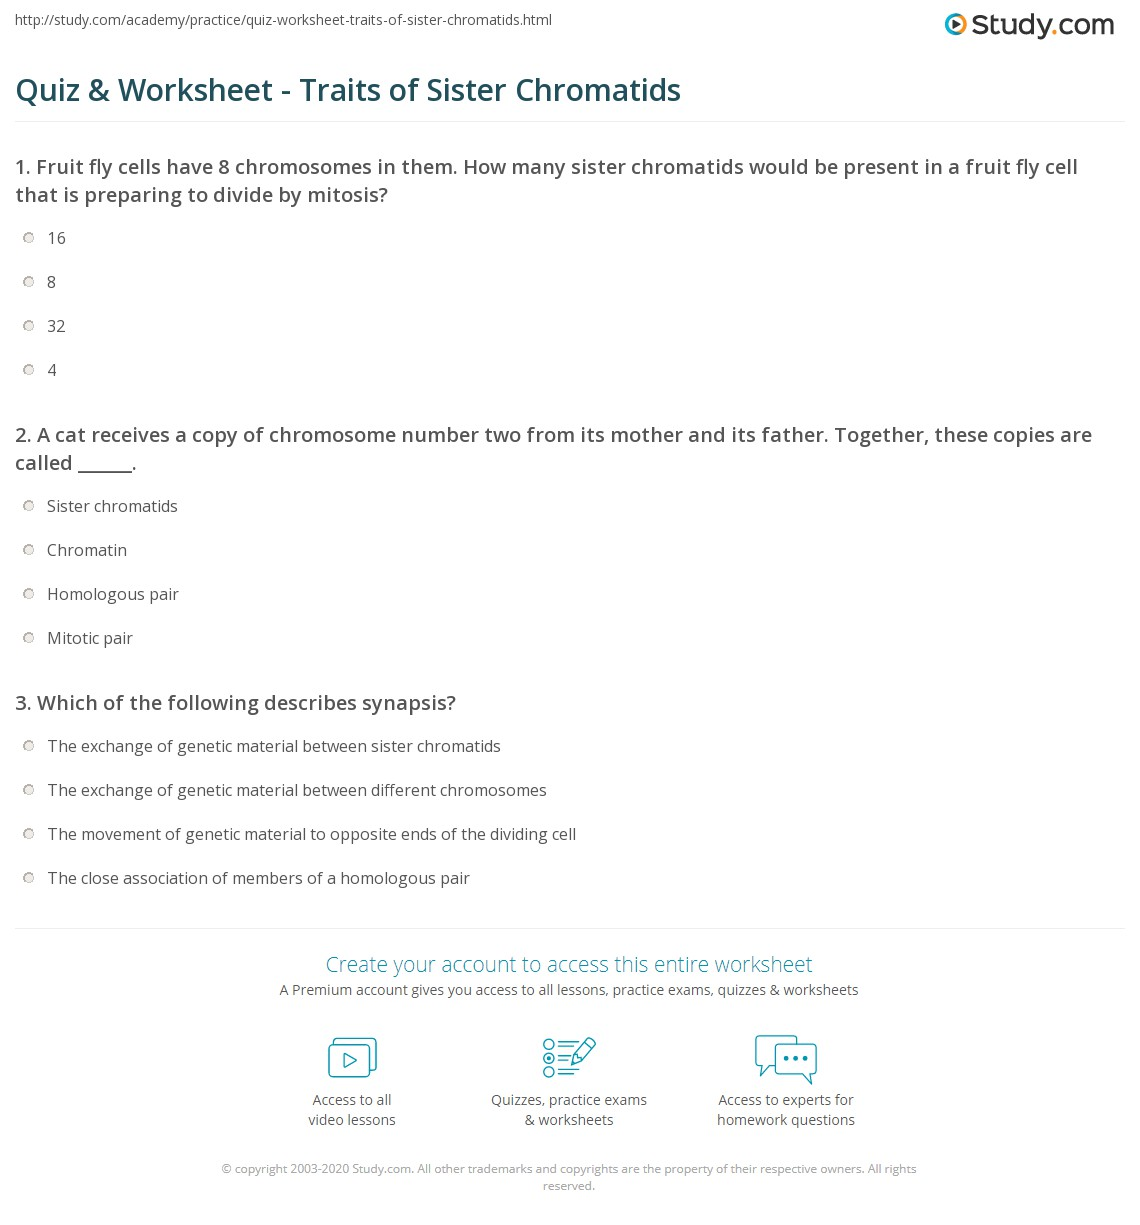 worksheet Chromosome Number Worksheet Answers quiz worksheet traits of sister chromatids study com a cat receives copy chromosome number two from its mother and father together these copies are called